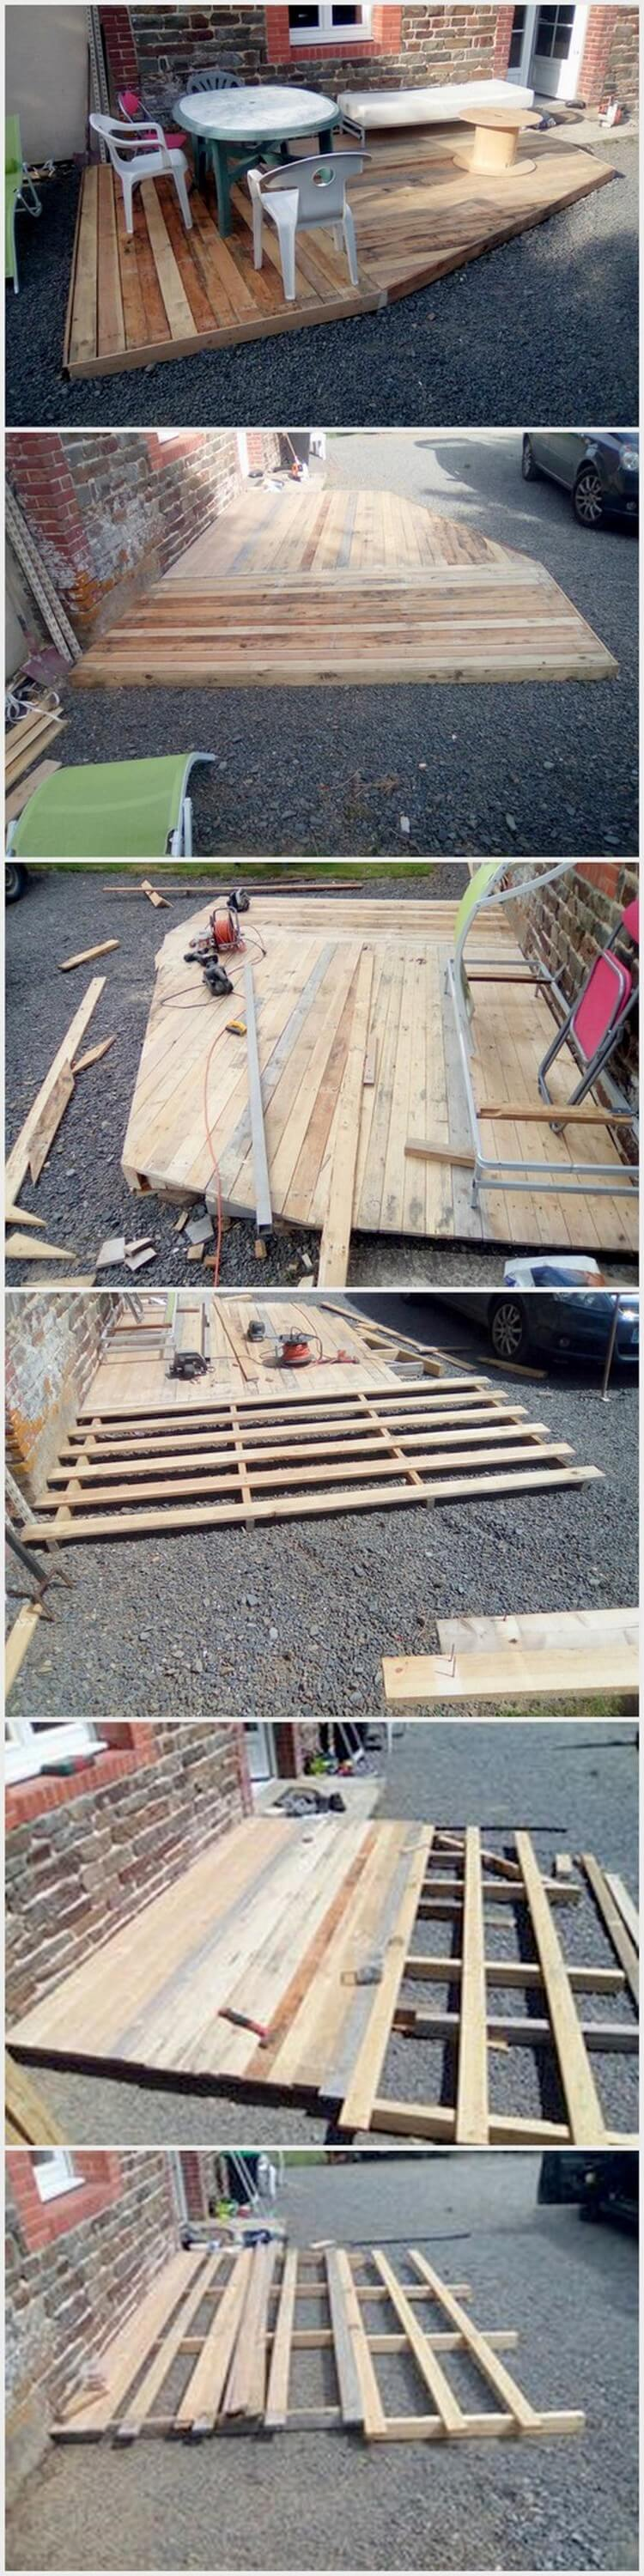 Pallet Outdoor Deck (2)